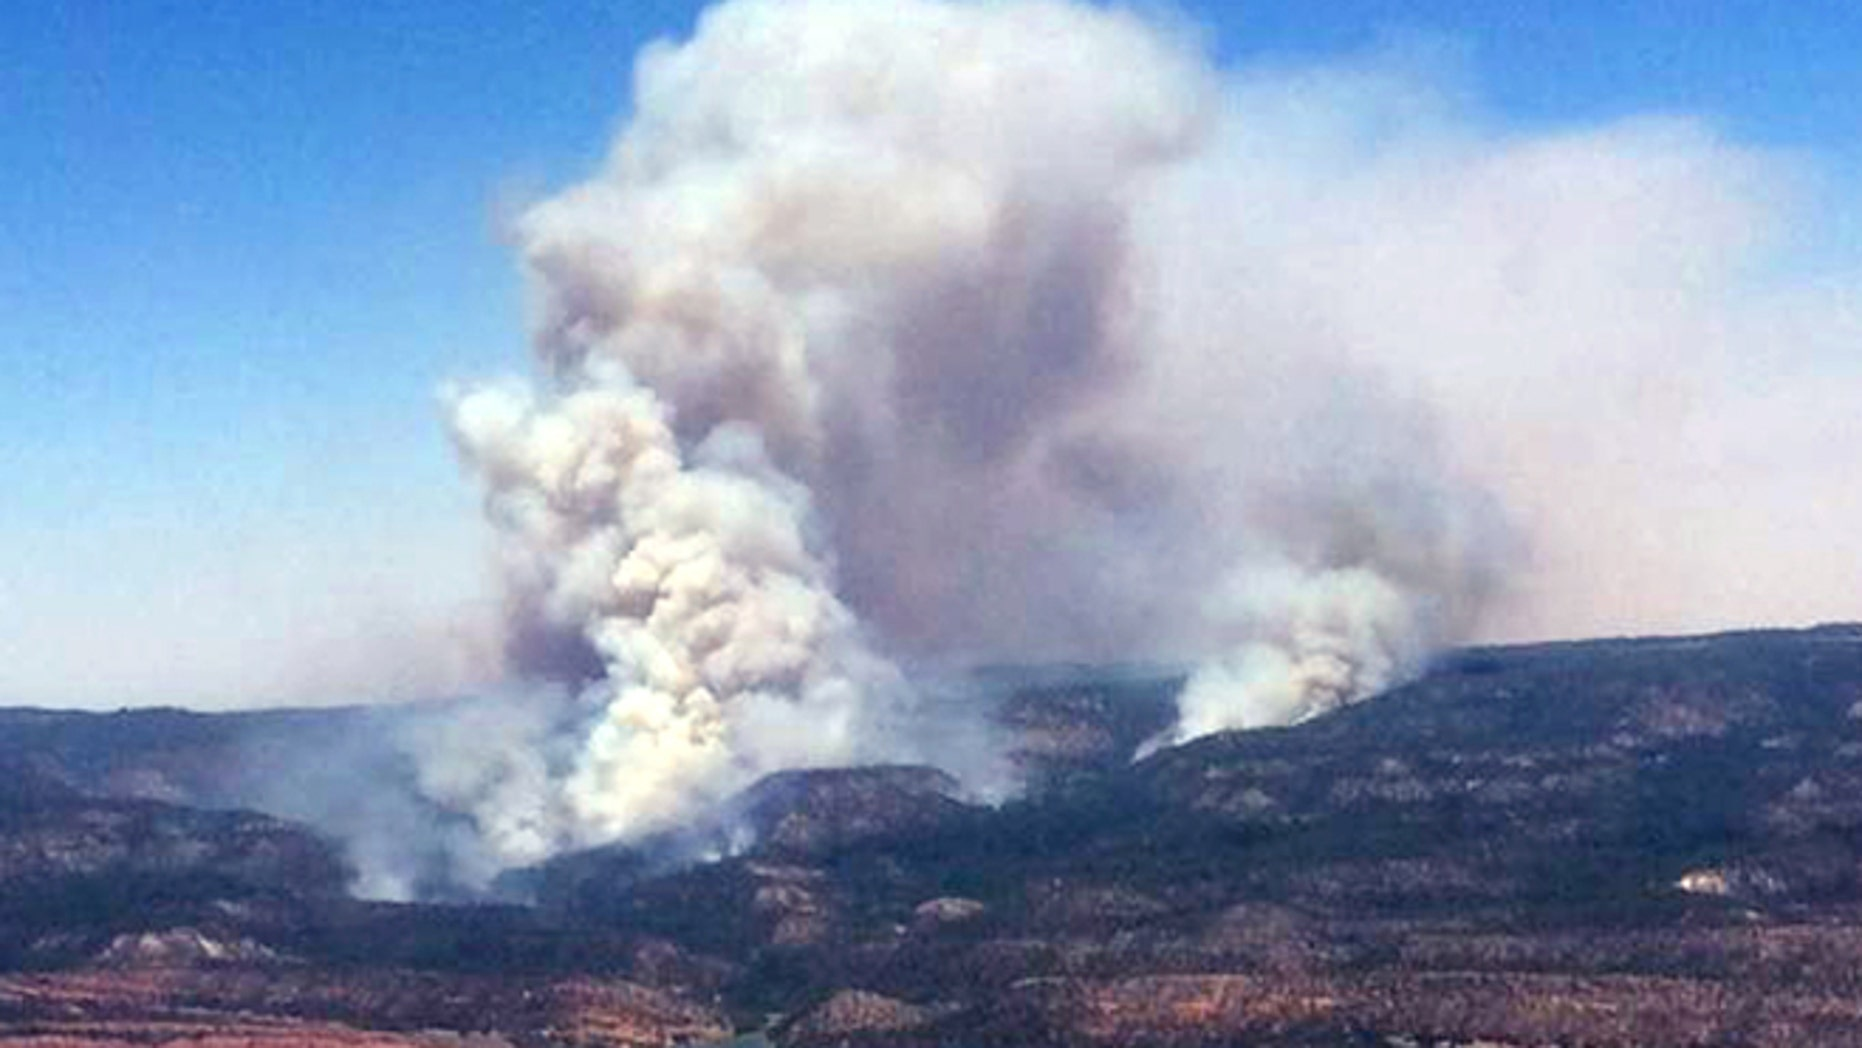 June 15, 2014: This image provided by Inci Web shows a plume of smoke in the Chuska Mountains near Naschitti, N.M.